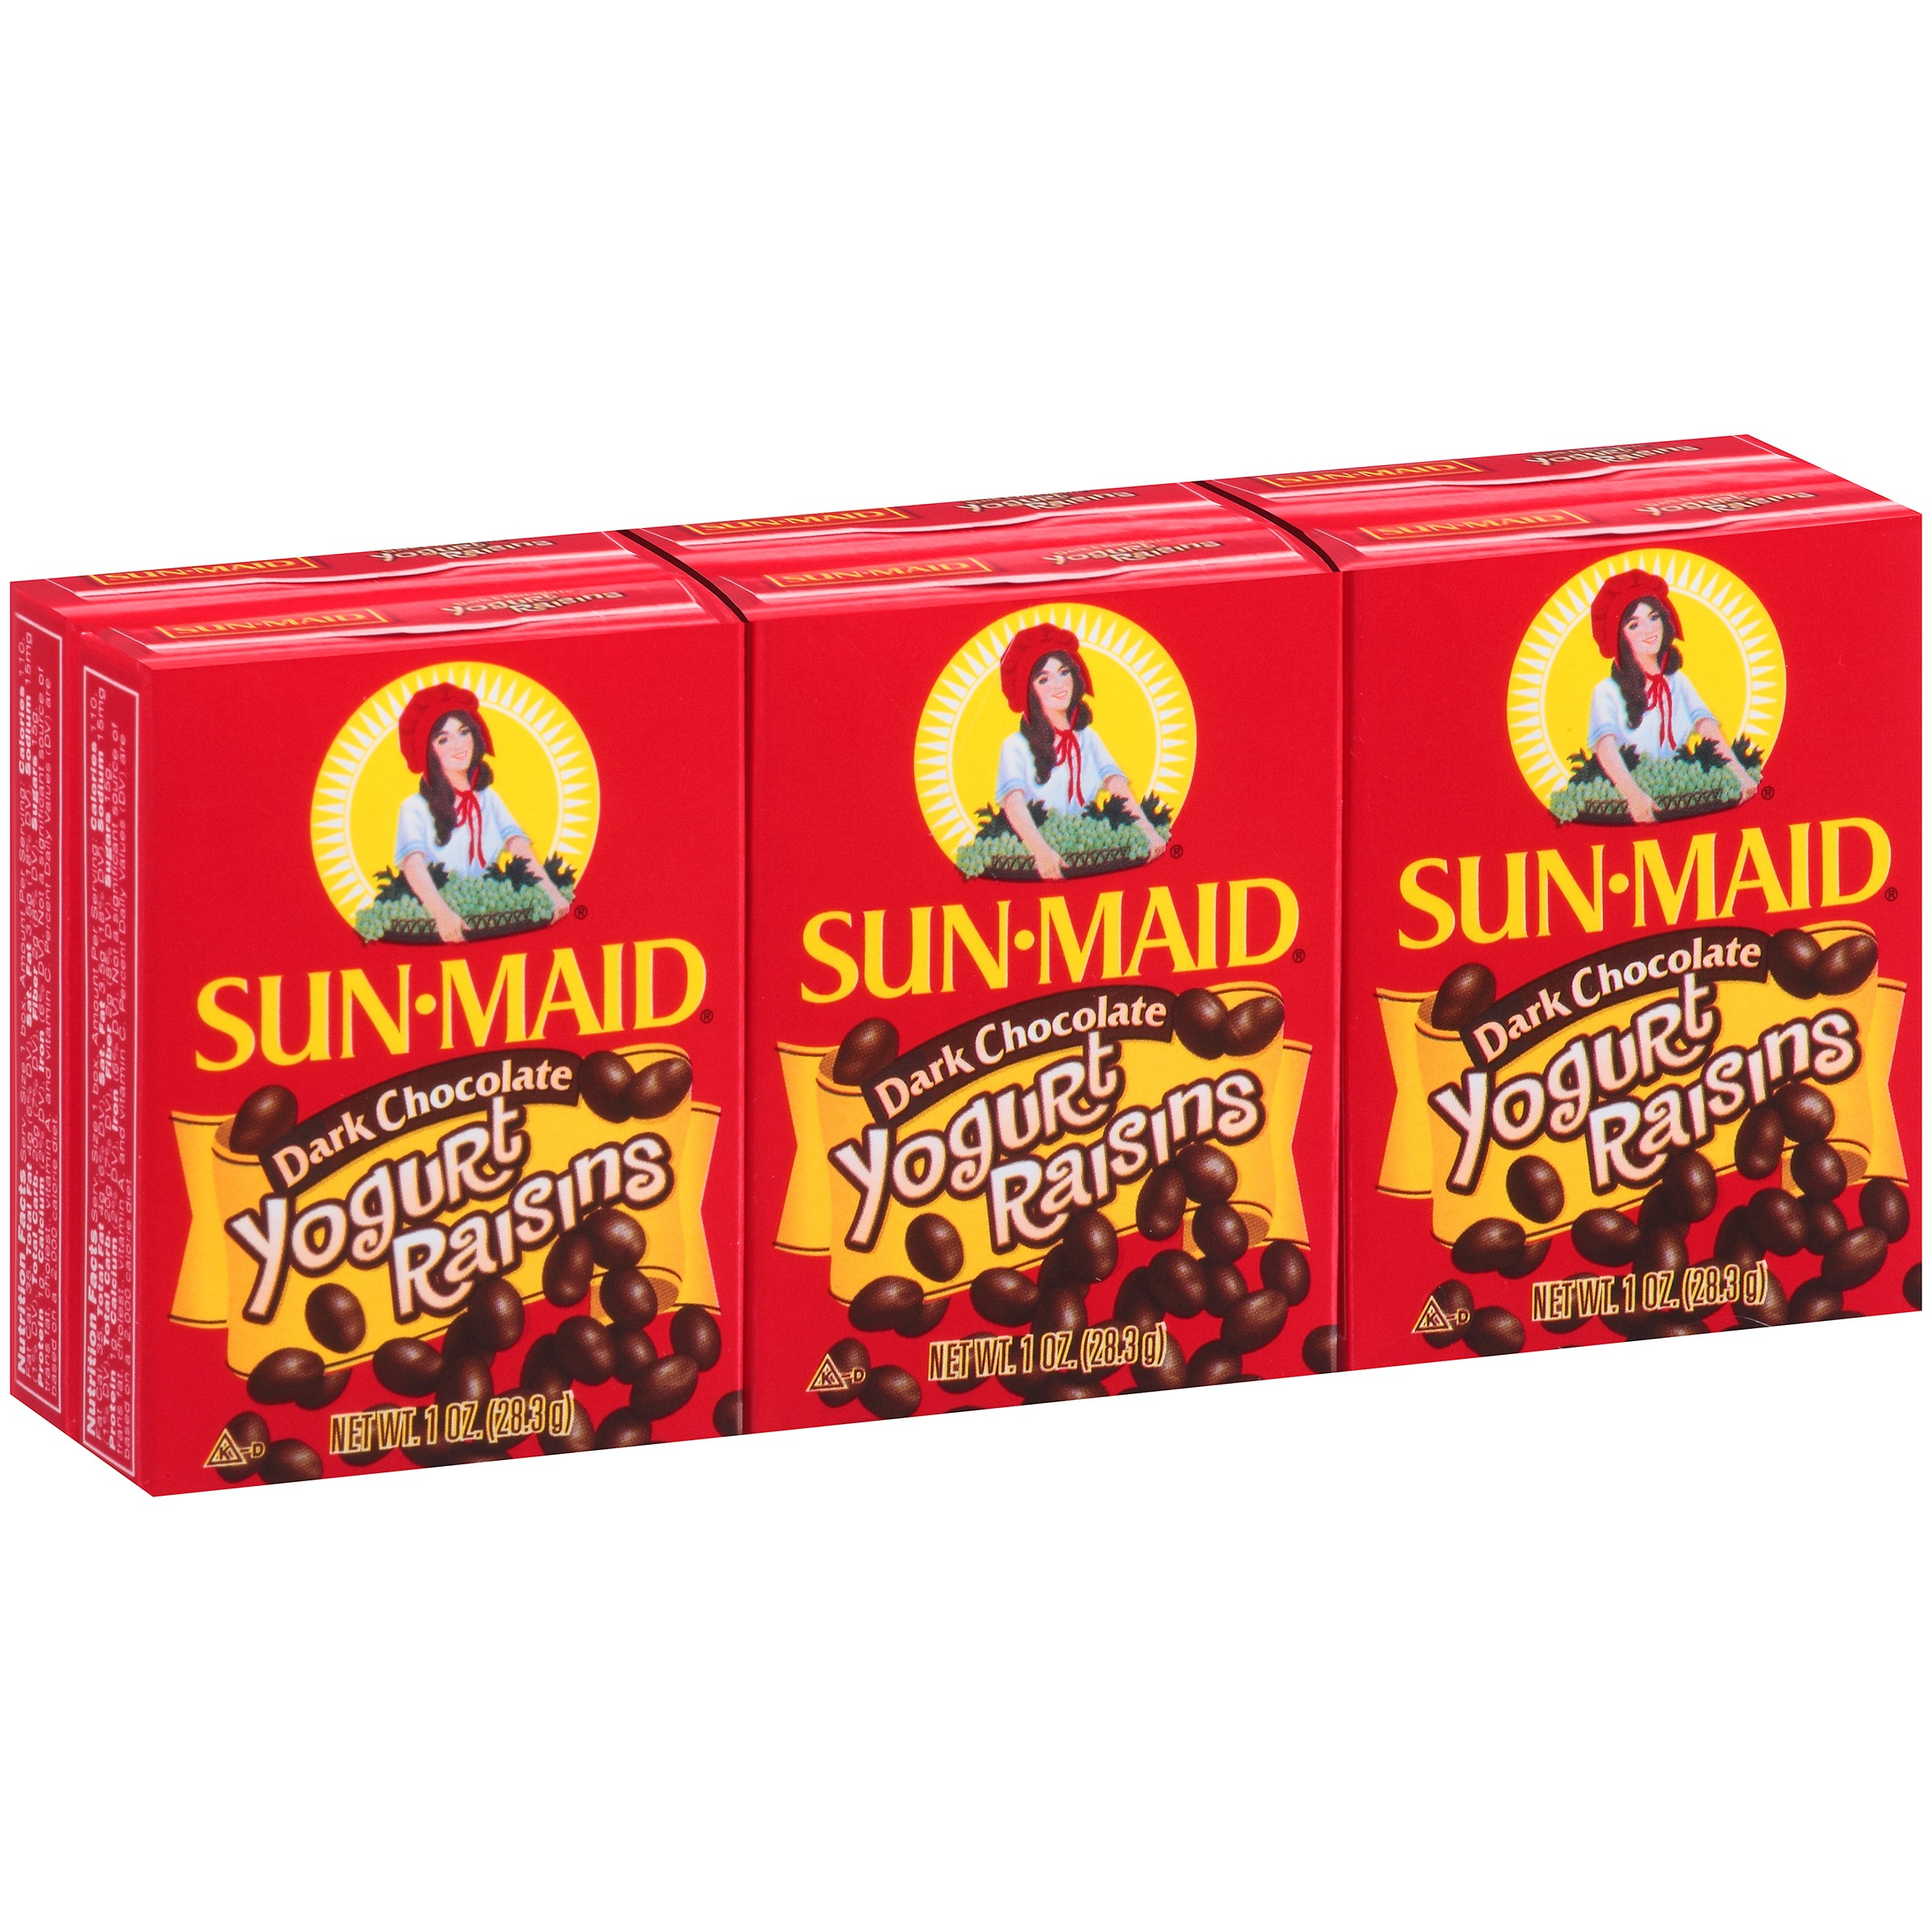 Sun-Maid Dark Chocolate Yogurt Raisins, 1 Oz, 6 ct